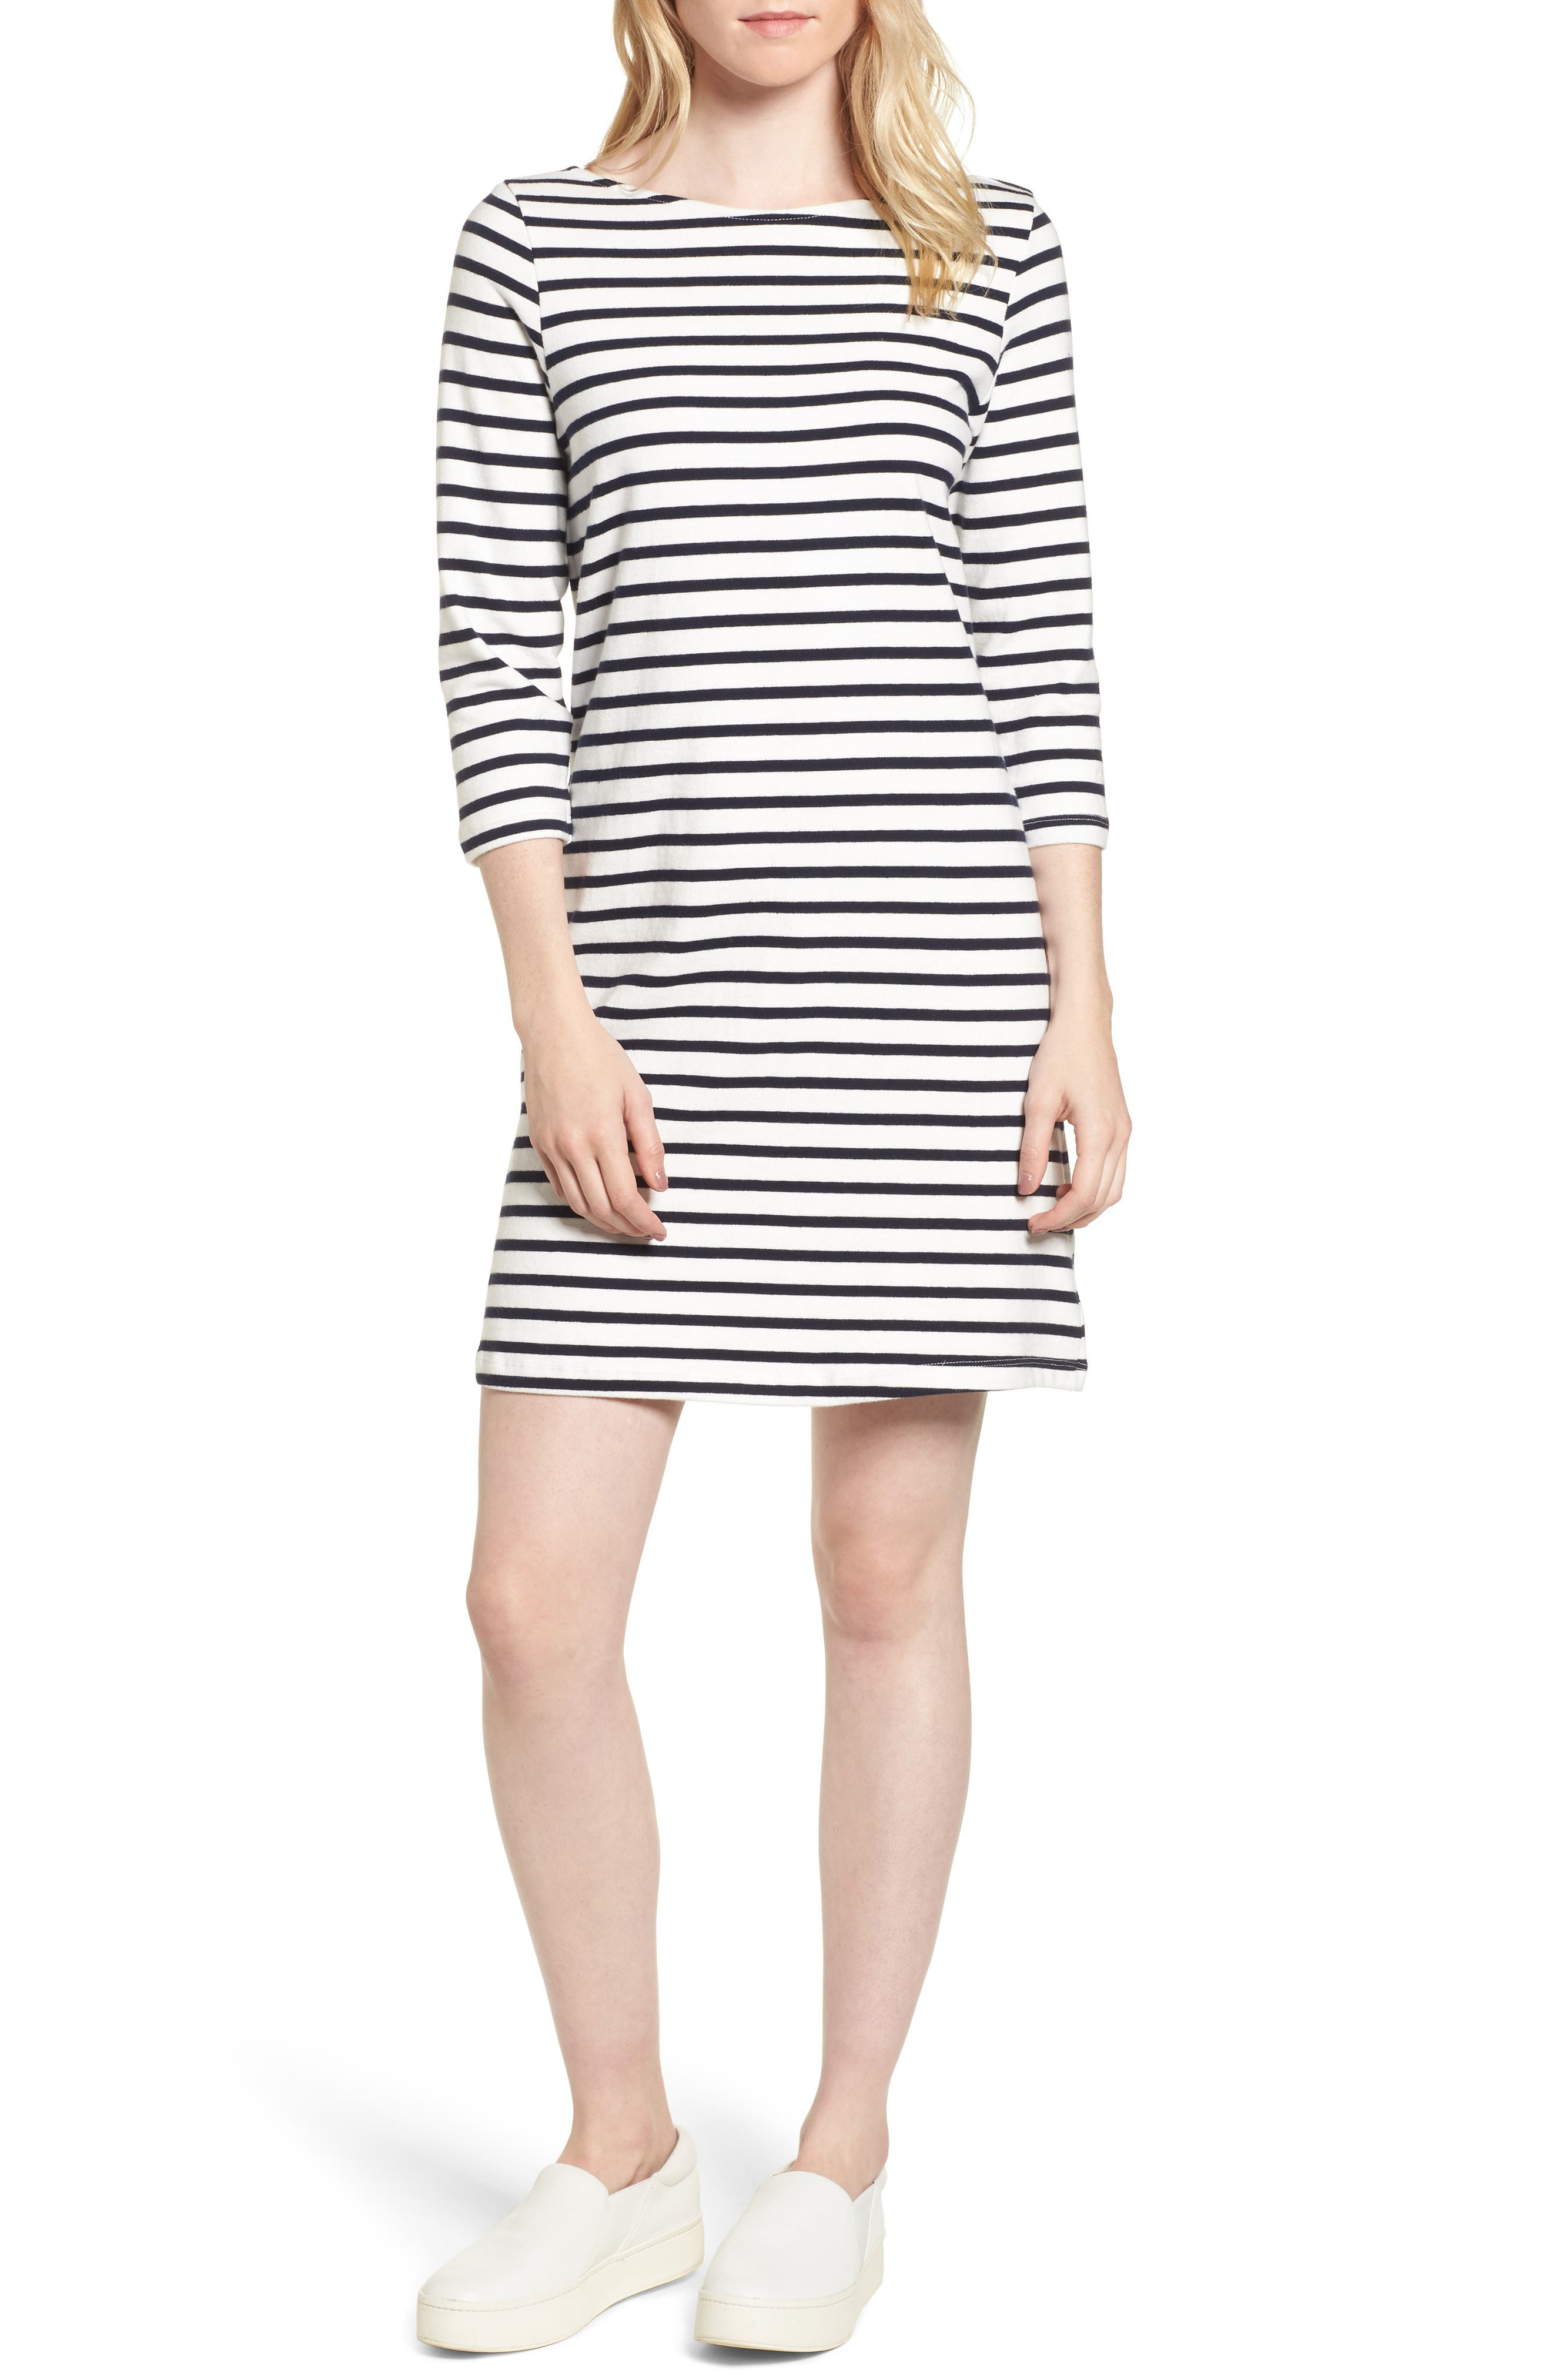 Trista Organic Cotton Dress,                             Main thumbnail 1, color,                             Ivory/ Navy